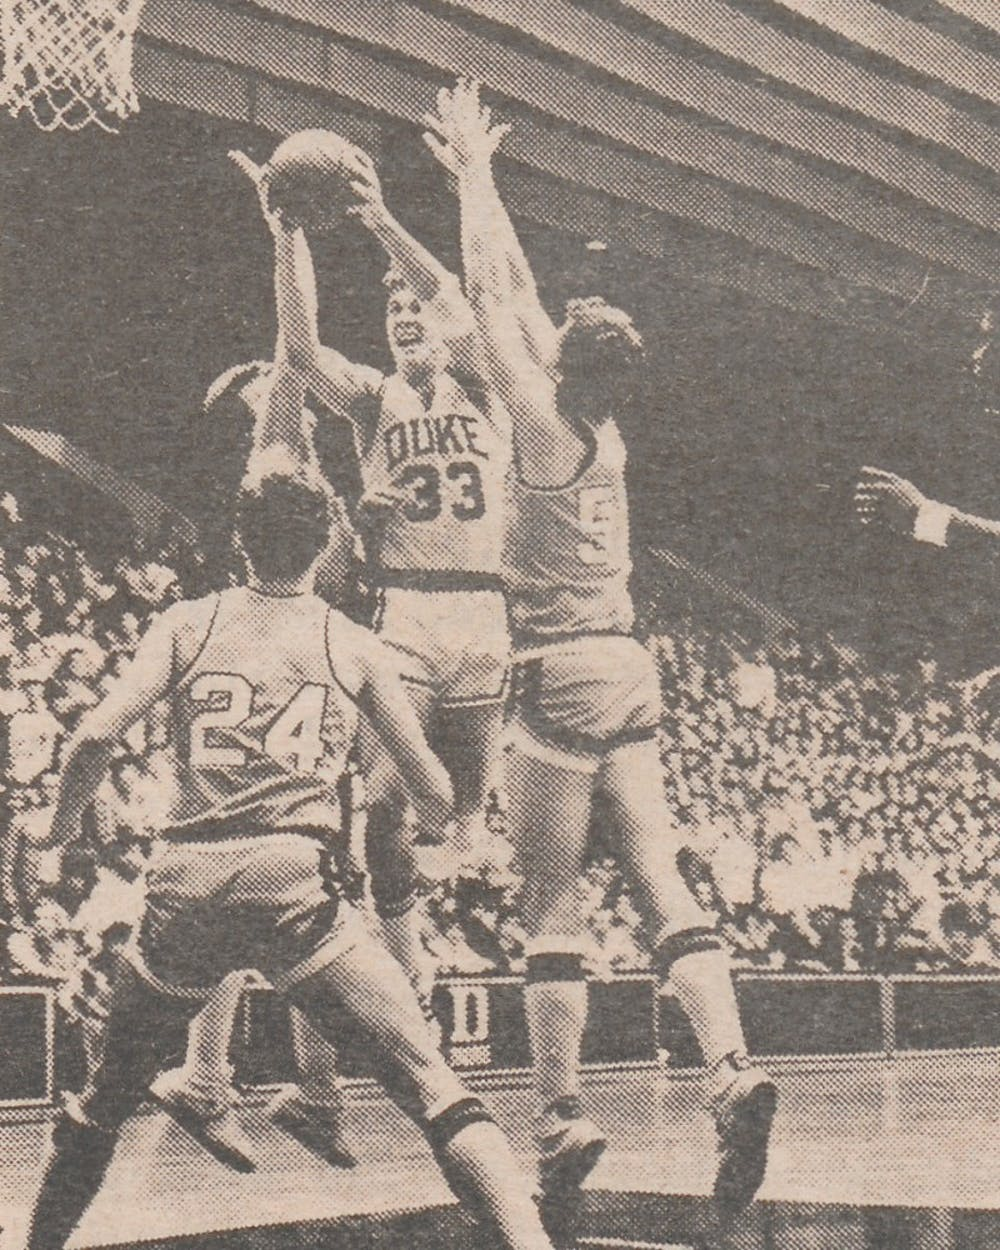 Kenny Dennard was a co-captain with Gene Banks for the 1980-81 Blue Devils.